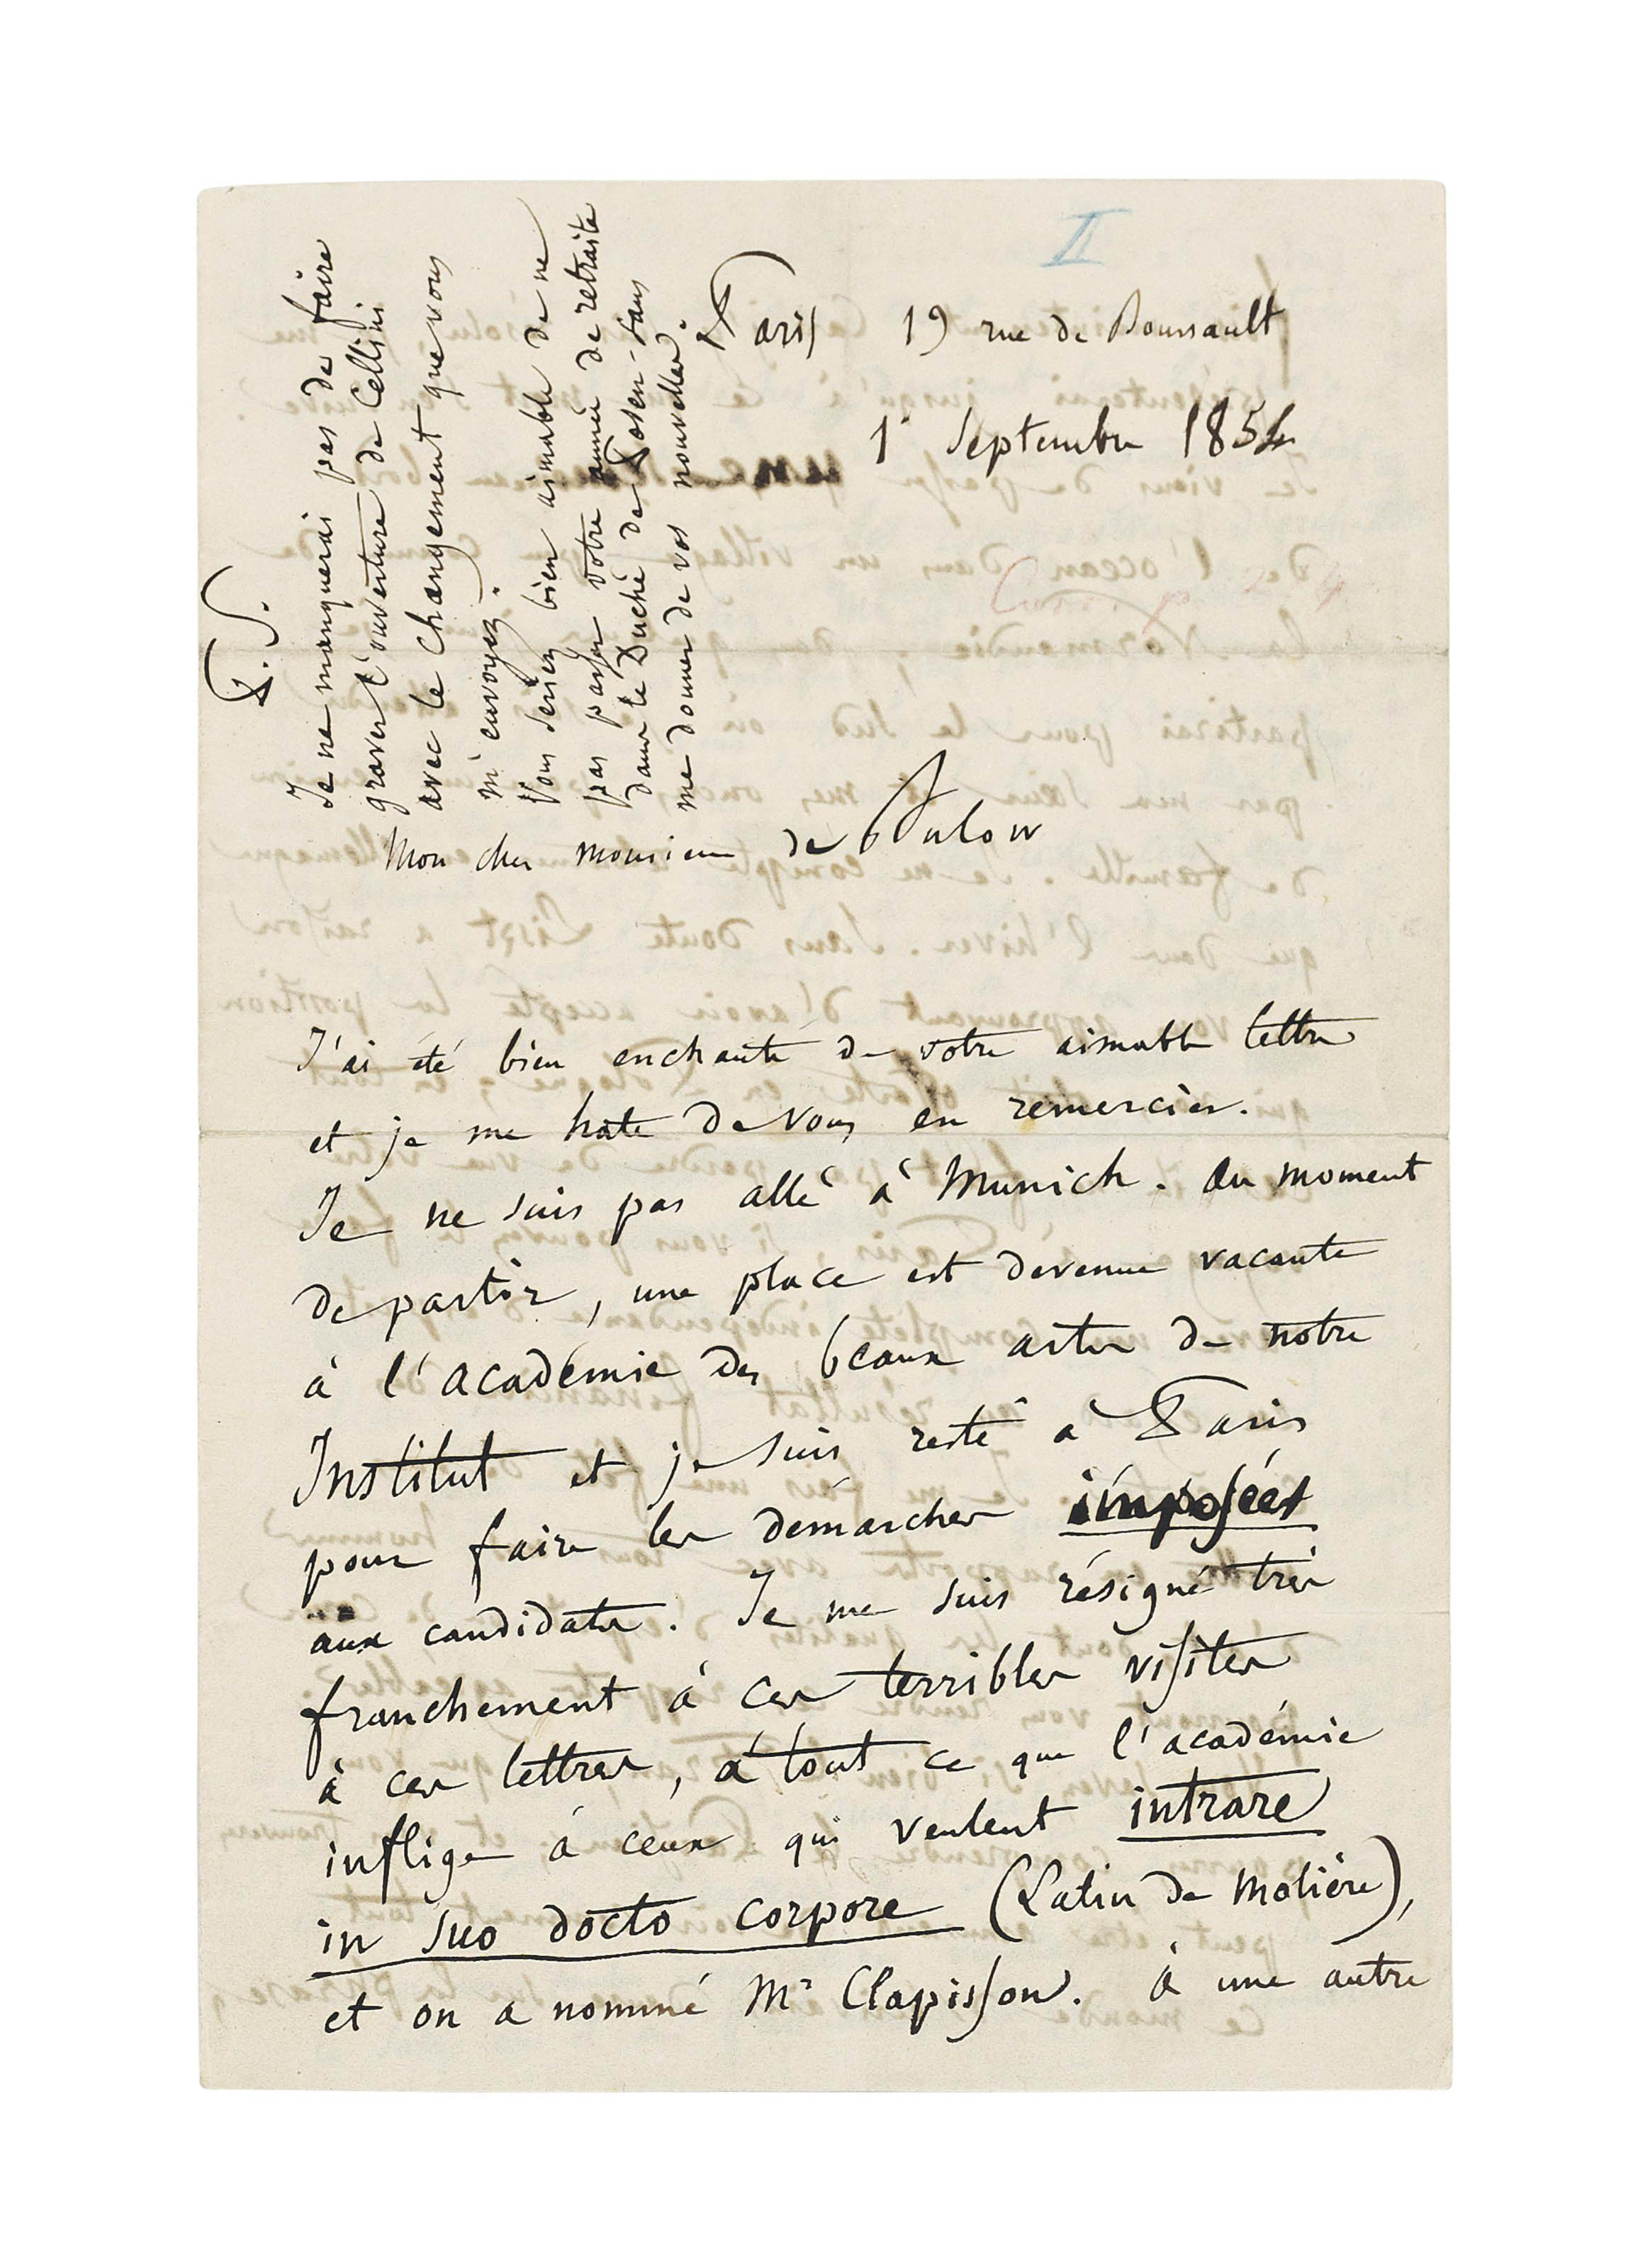 BERLIOZ, Hector (1803-1869). Autograph letter signed ('Hector Berlioz') to [Hans] von Bülow, 19, rue de Boursault, 1 September 1854, 2½ lines heavily cancelled, four pages, 8vo (bifolium), envelope. Provenance: acquired at Henrici, Berlin, by Dr Fritz and Dita Callomon, thence by gift, 1950.